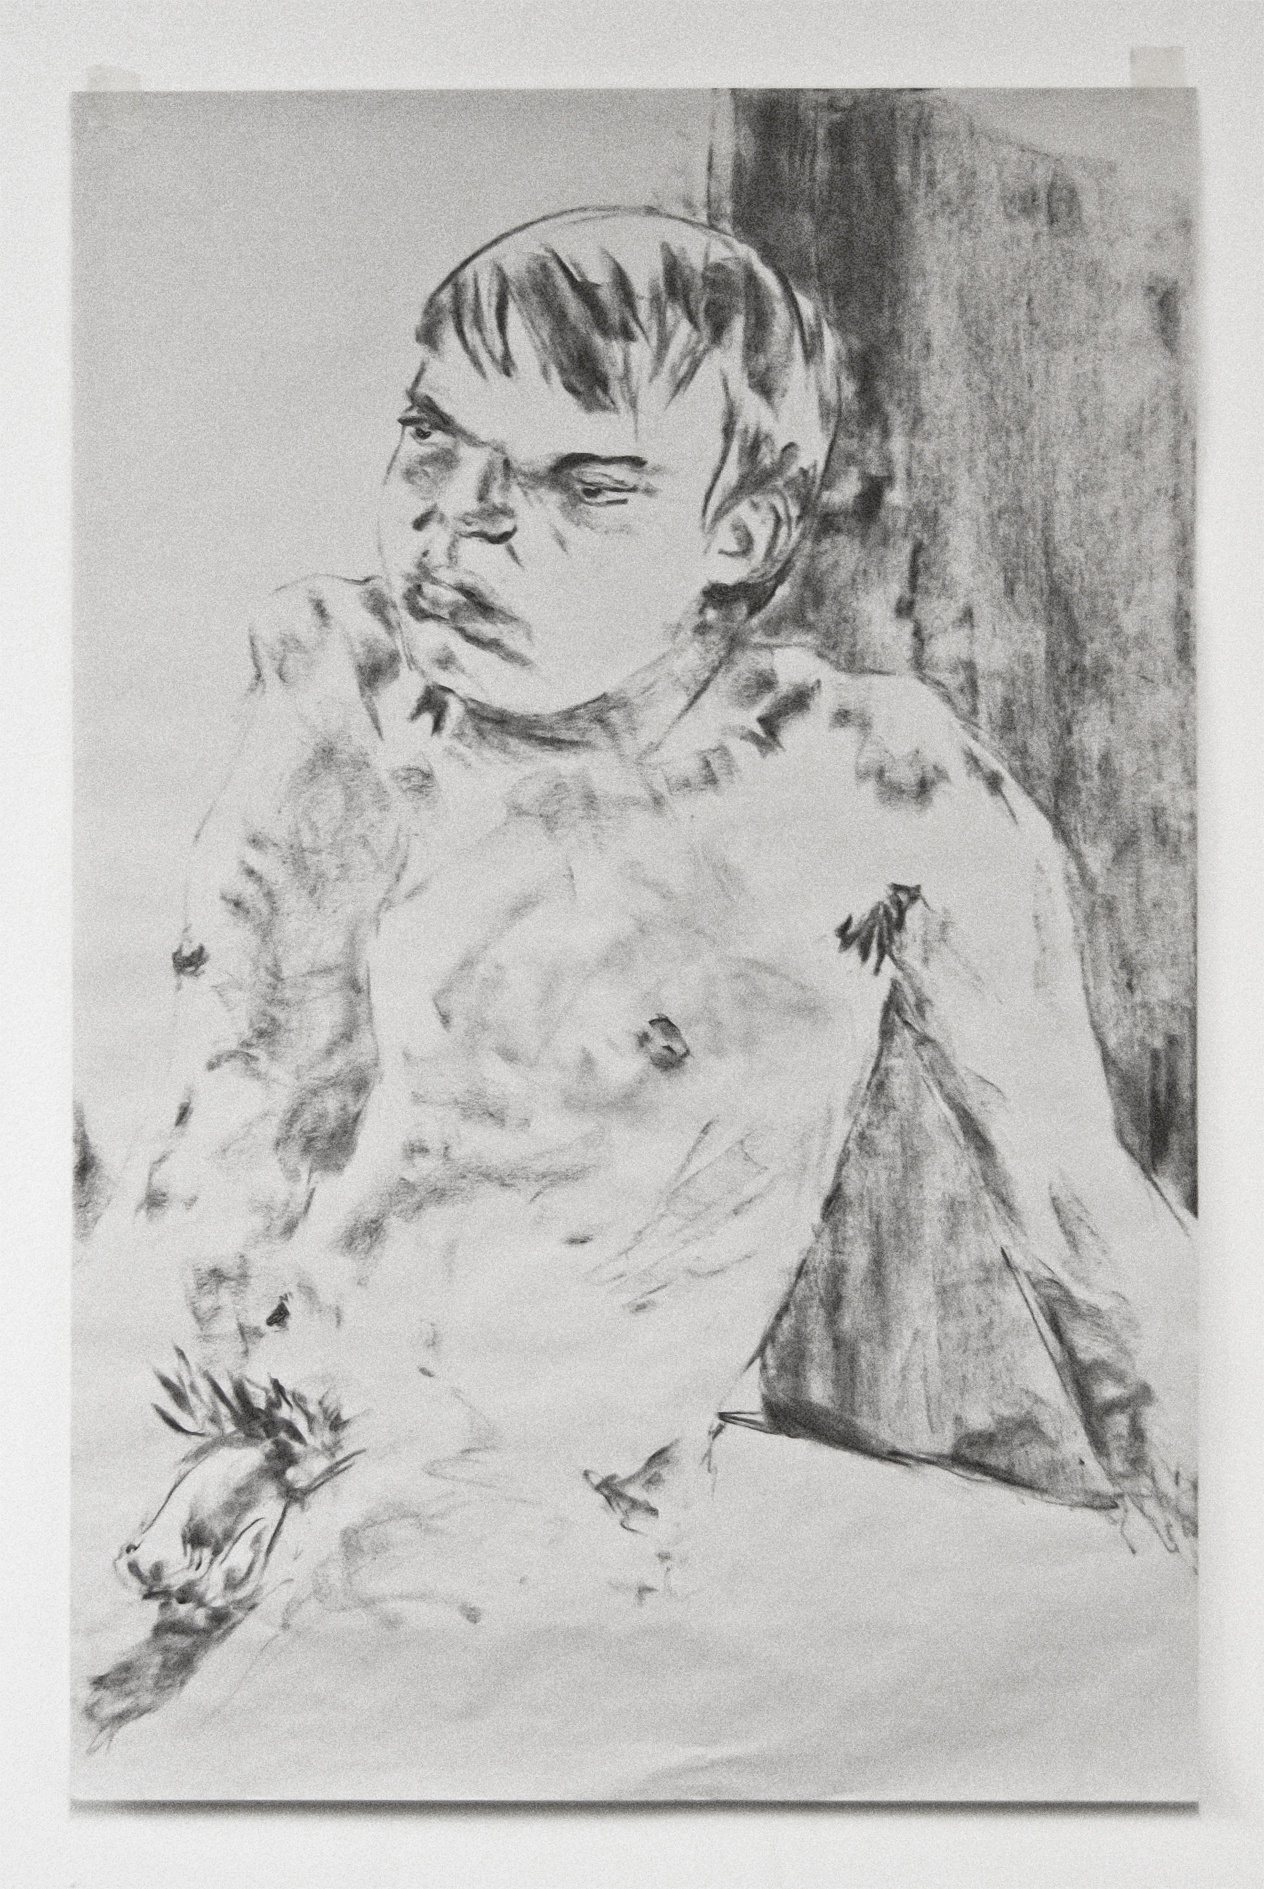 Charcoal on Newsprint, Life Drawing Male Nude